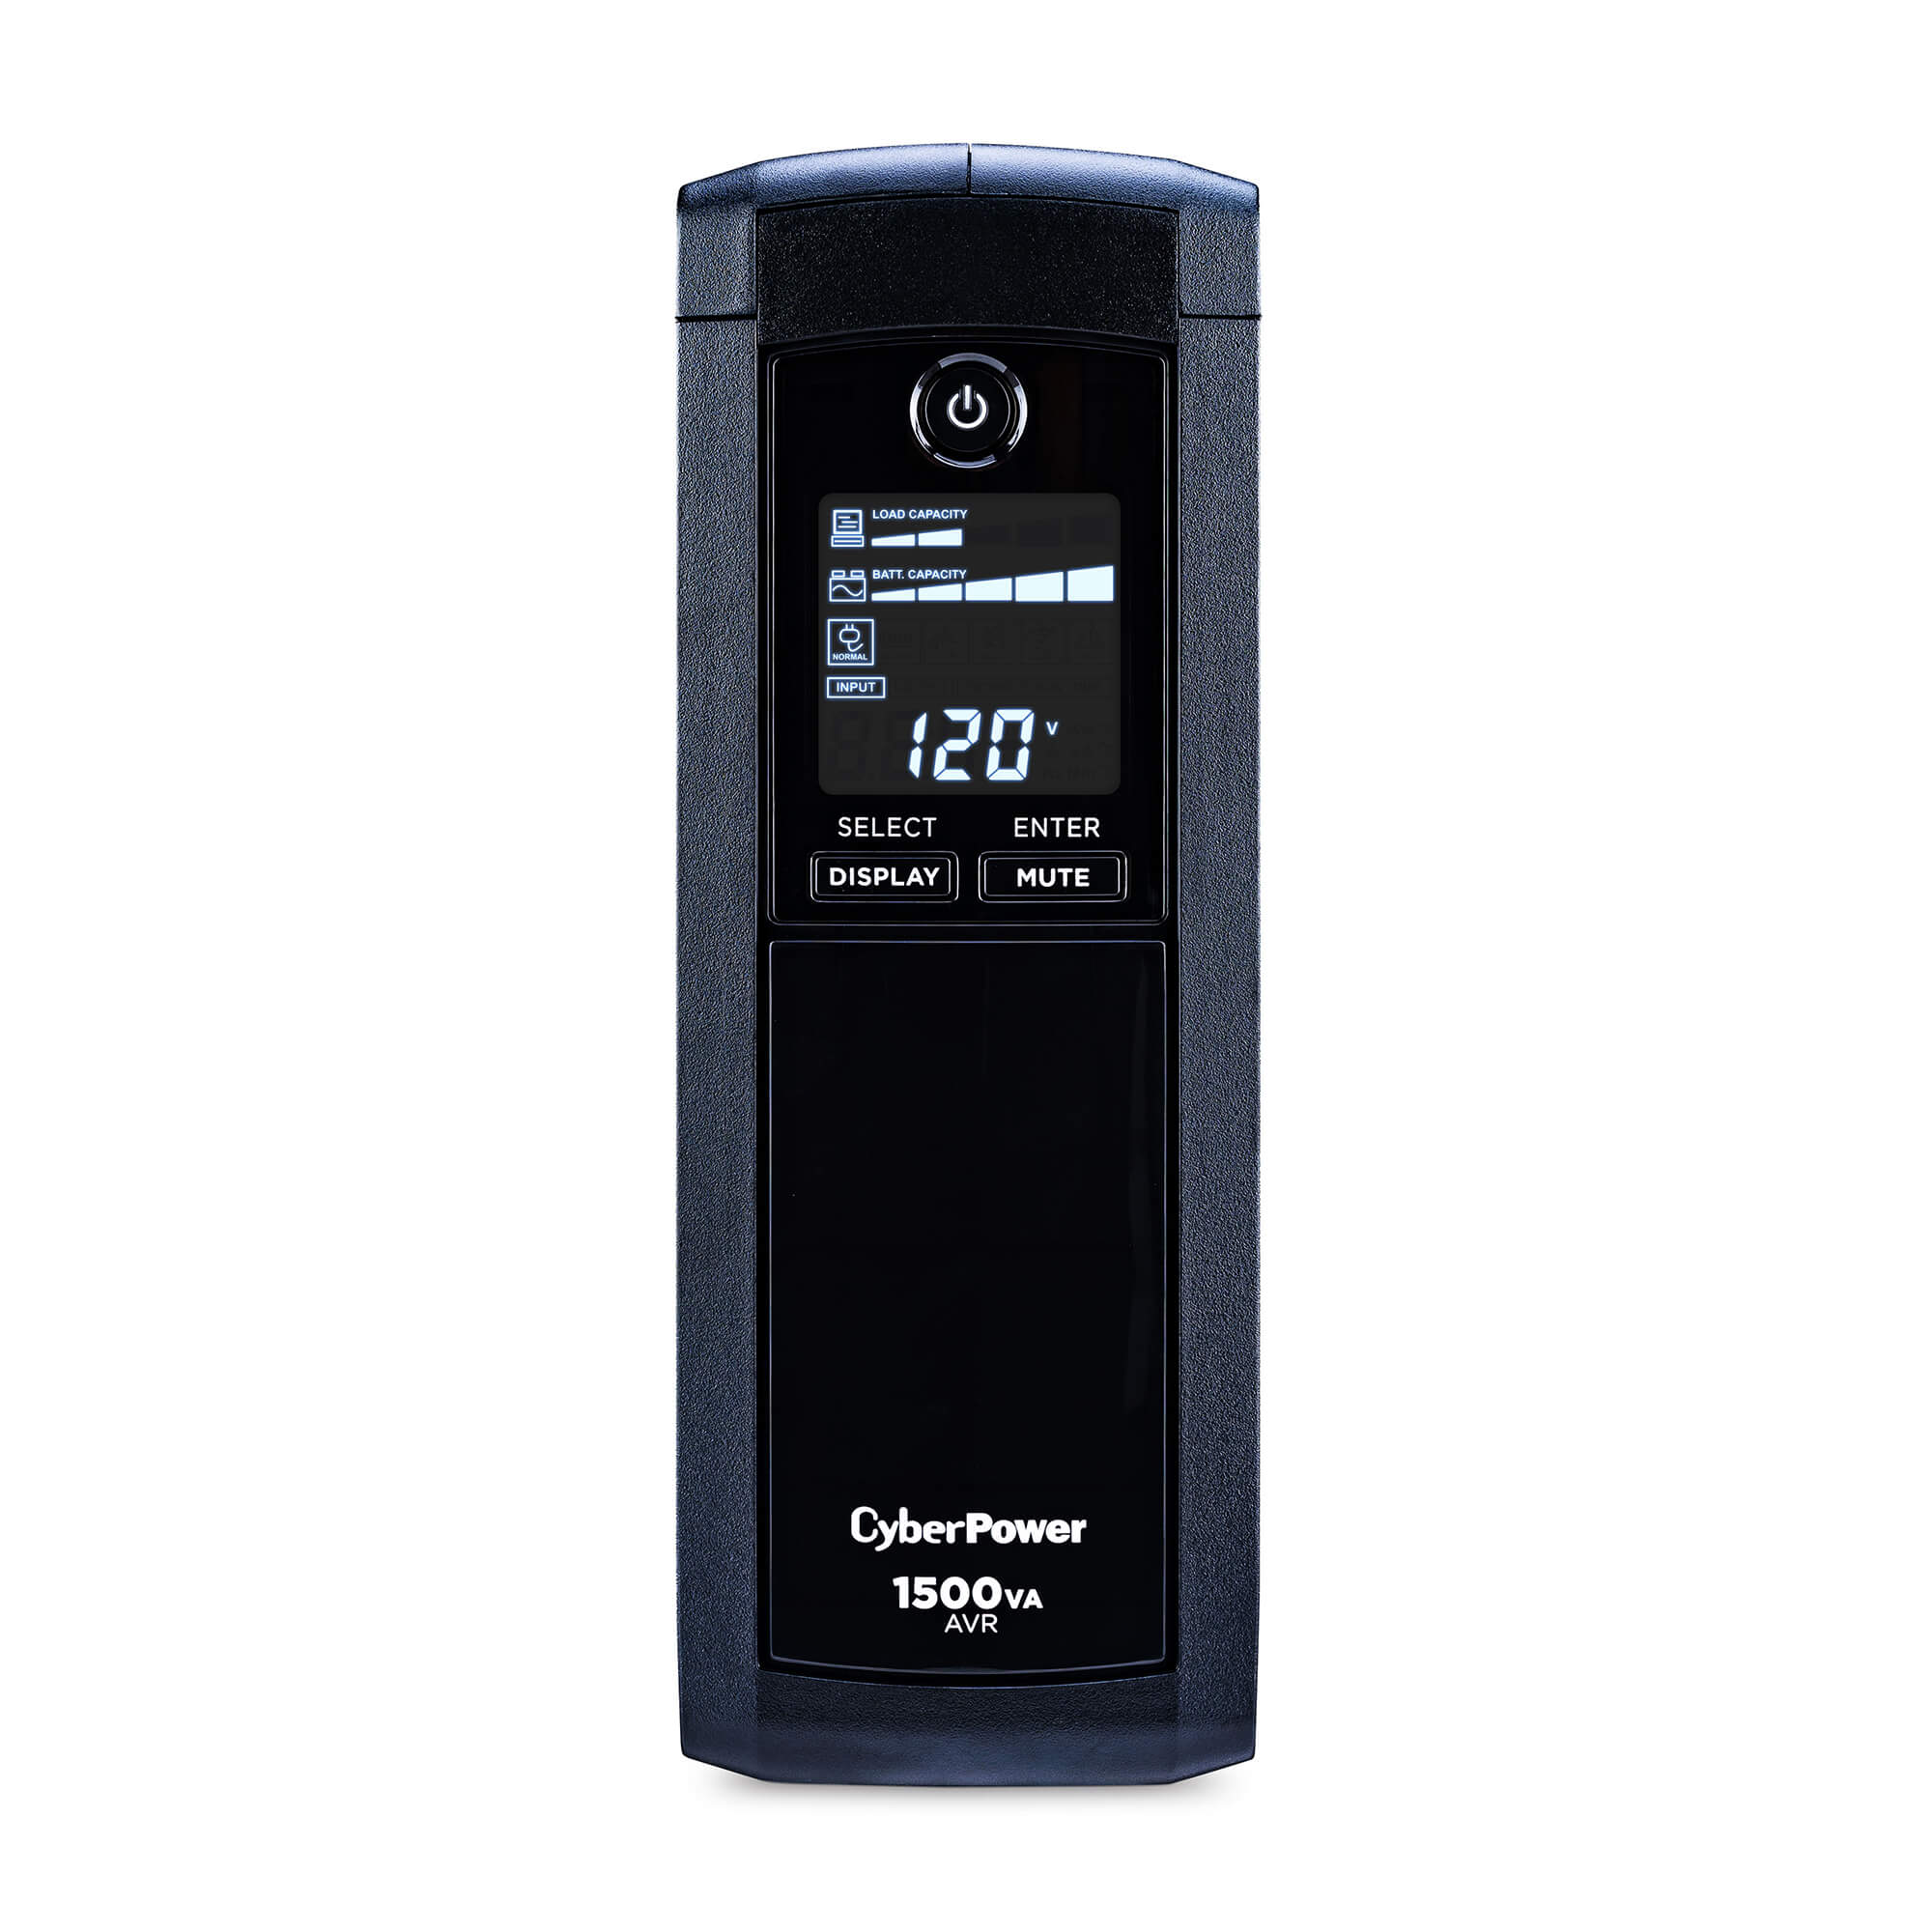 CyberPower CP1500AVRLCD Intelligent LCD